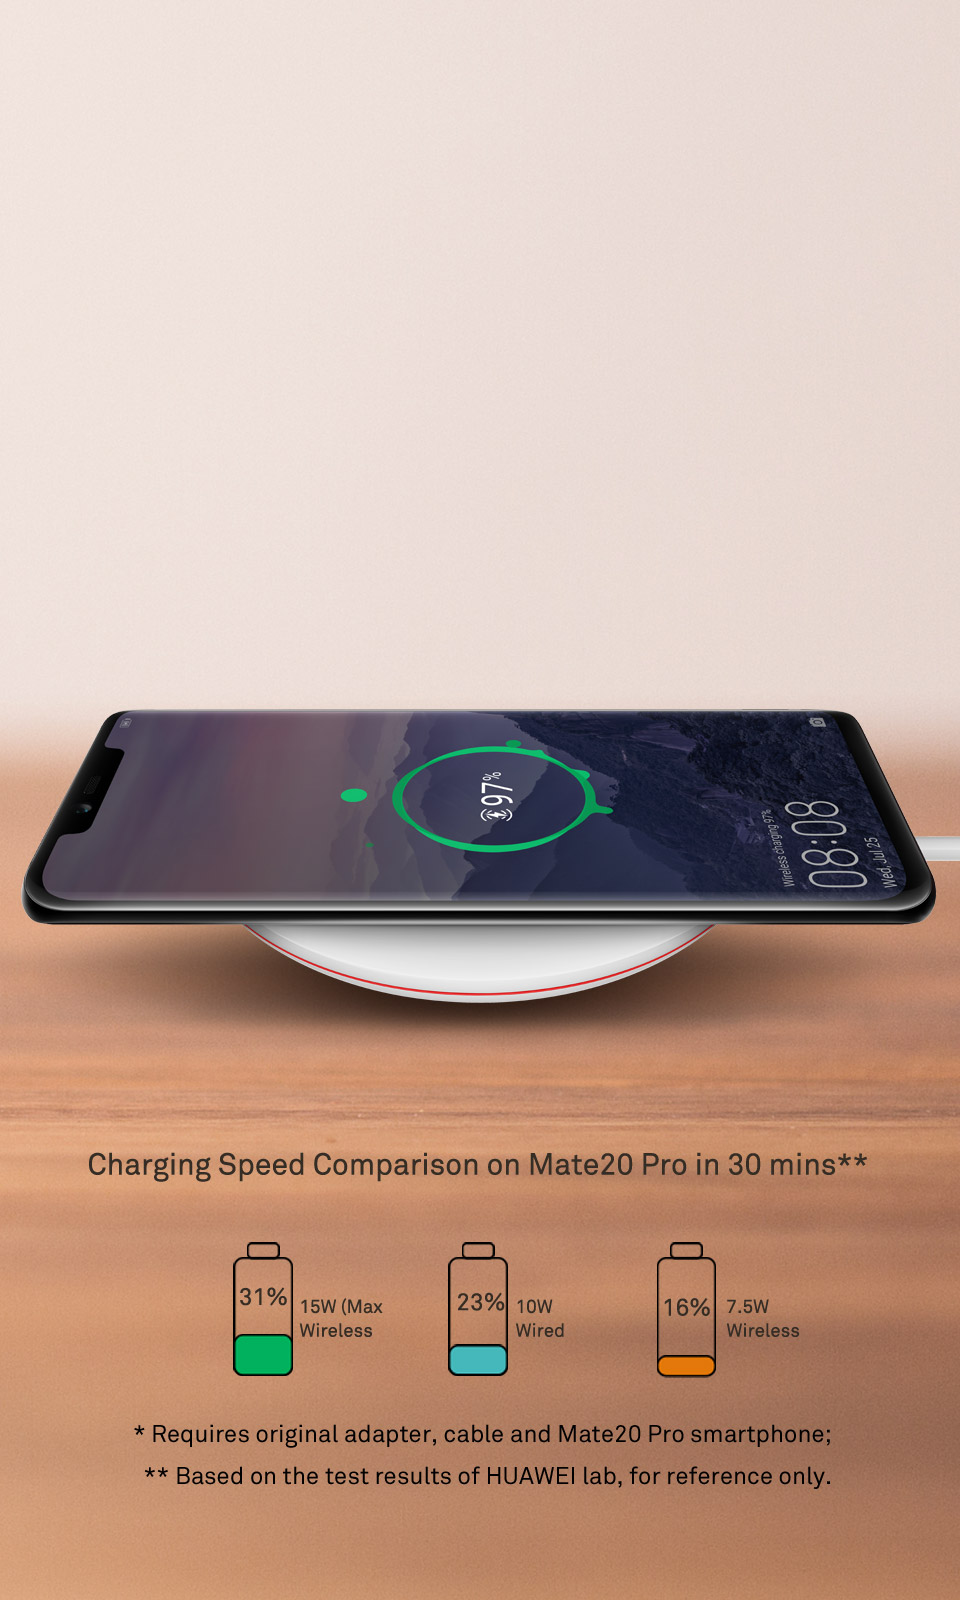 15 W (Max) Quick Wireless Charge